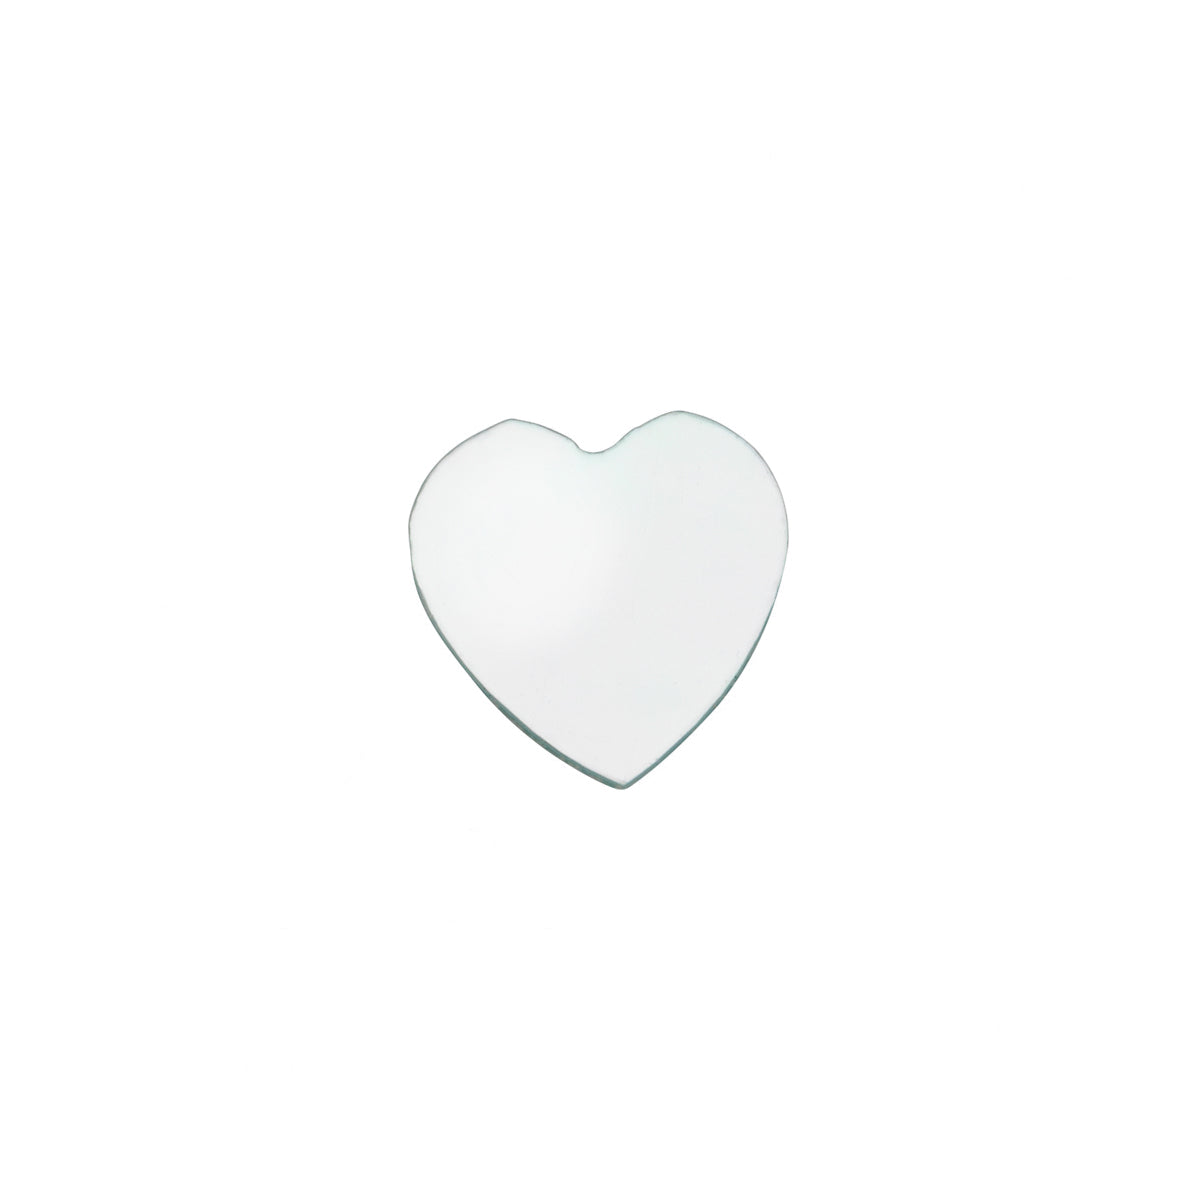 Mother of Pearl Heart Charm - Loquet - Pendants & Charms | Broken English Jewelry